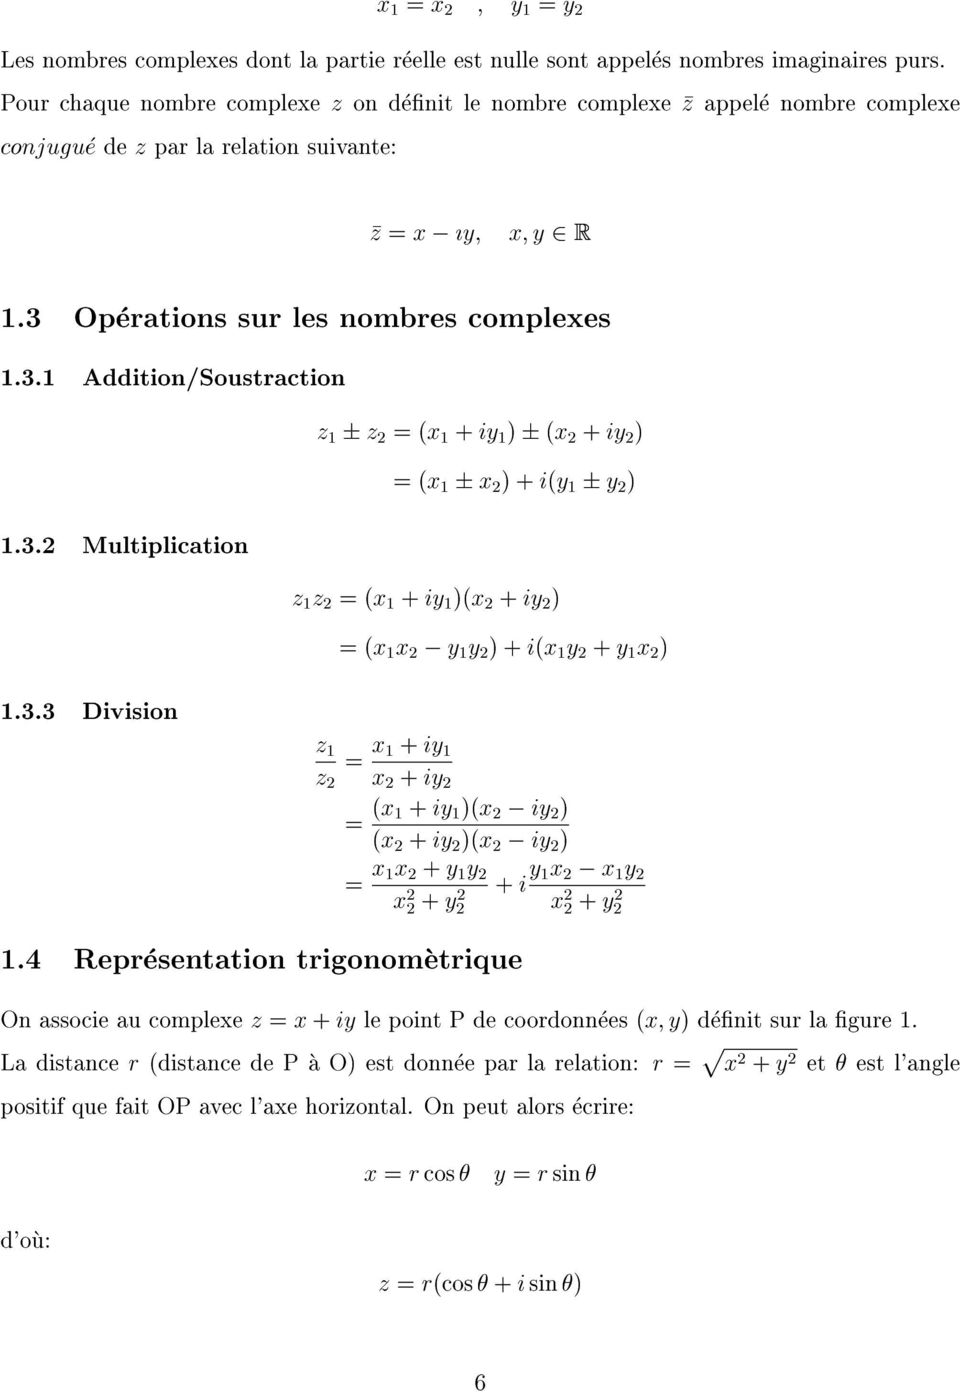 Operationssurlesnombrescomplexes 1.3.1 Addition/Soustraction z 1 z2=(x1+iy1) (x2+iy2) =(x1 x2)+i(y1 y2) 1.3.2 Multiplication z1z2=(x1+iy1)(x2+iy2) =(x1x2 y1y2)+i(x1y2+y1x2) 1.3.3 Division z2=x1+iy1 z1 =(x1+iy1)(x2 x2+iy2 iy2) (x2+iy2)(x2 iy2) =x1x2+y1y2 x2+y2 +iy1x2 x2+y2 x1y2 1.